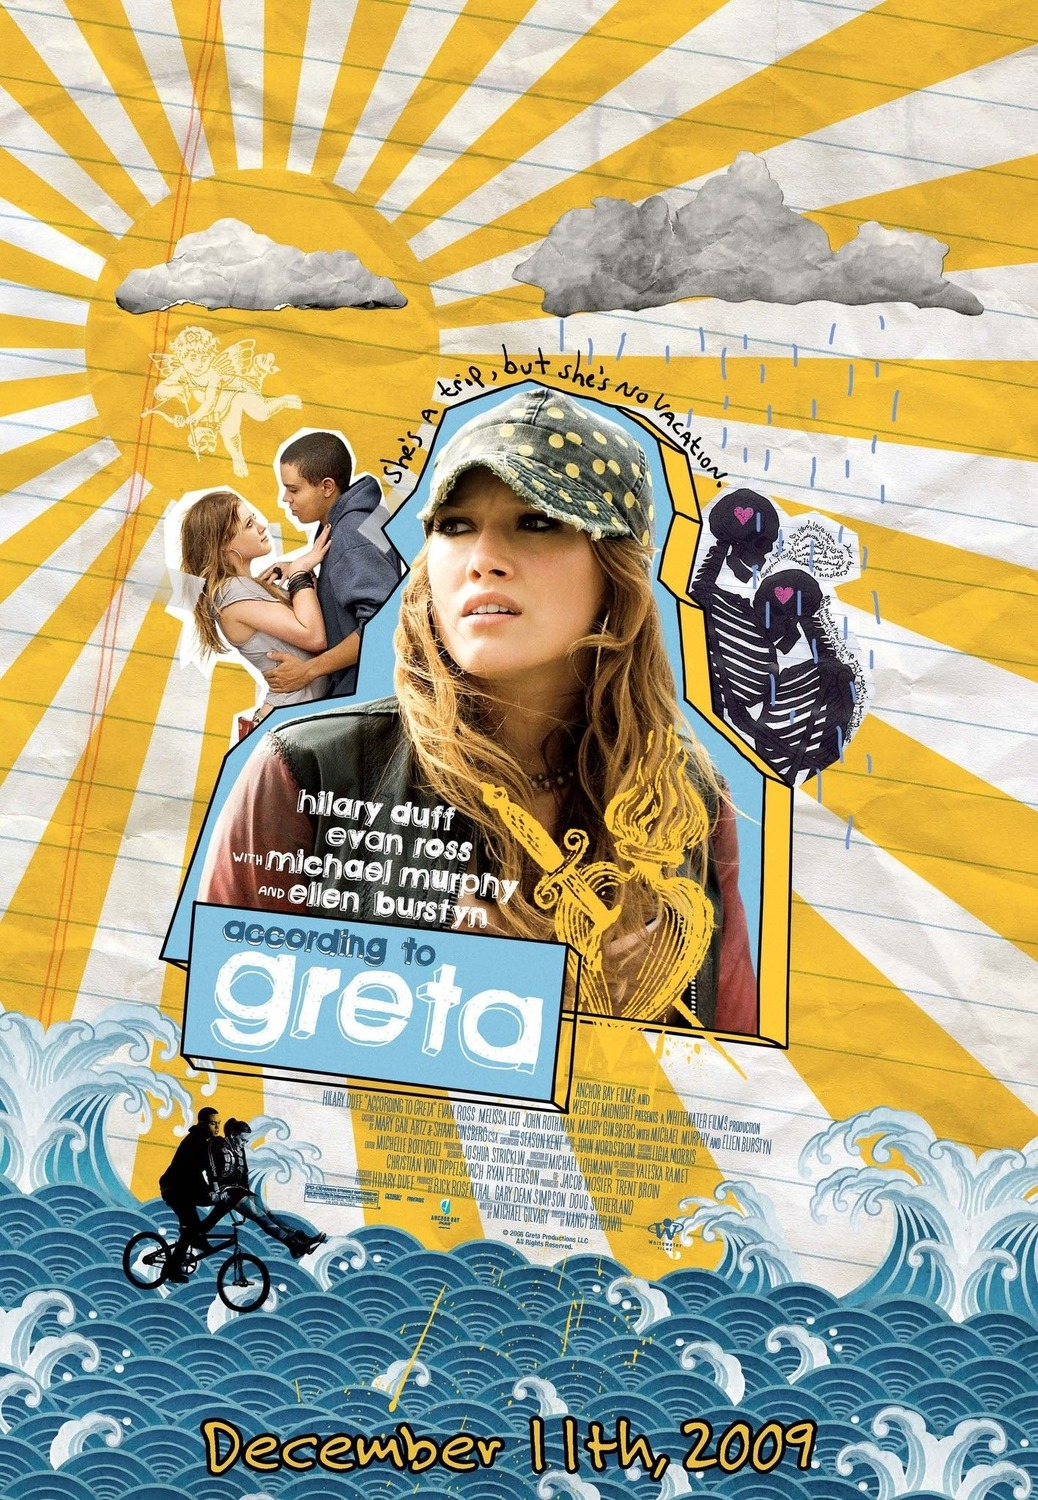 2009MoviePosterGalleryAccordingtoGretaXLGImage